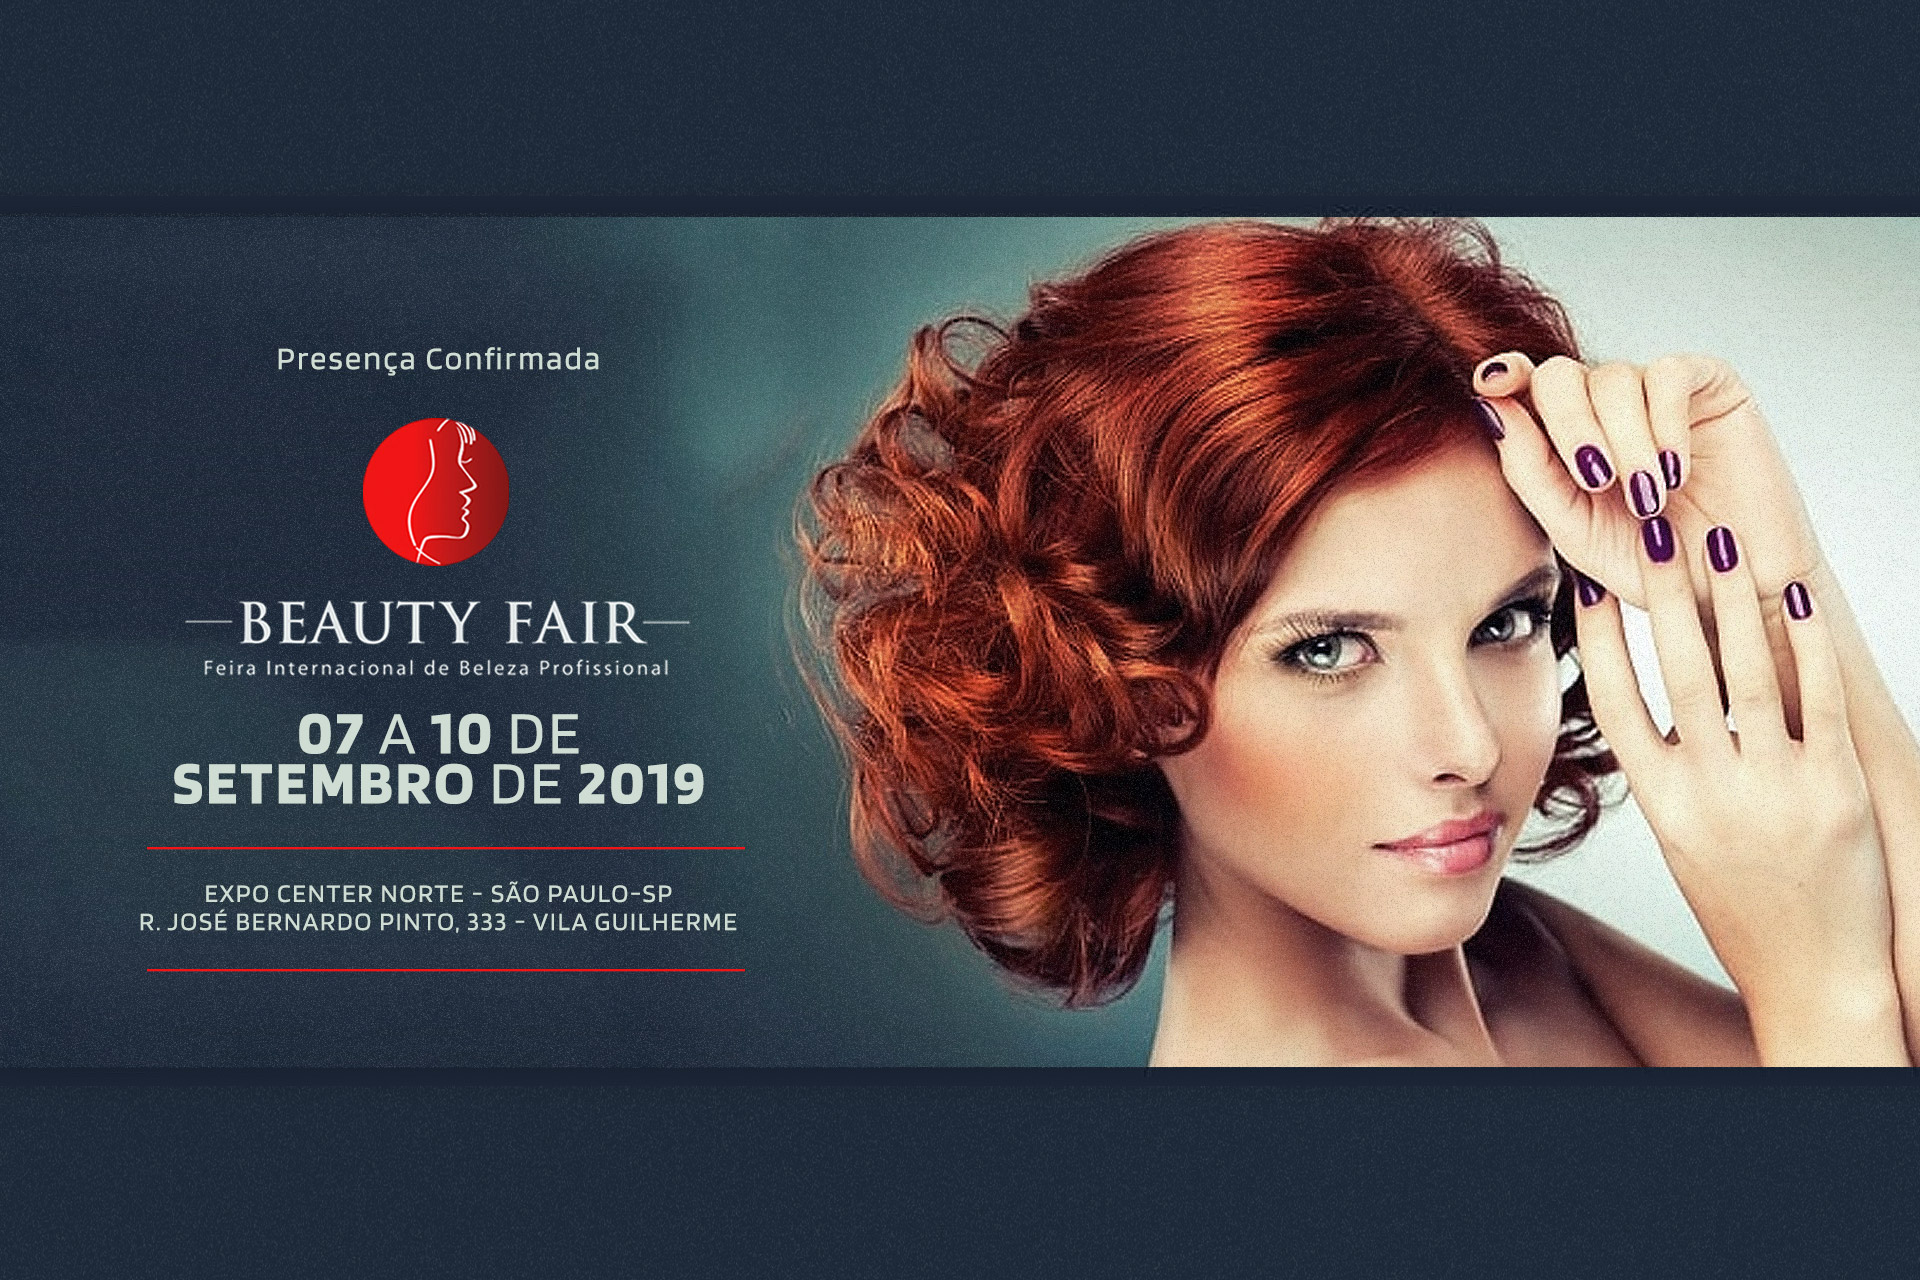 A Lind confirma presença na Beauty Fair 2019